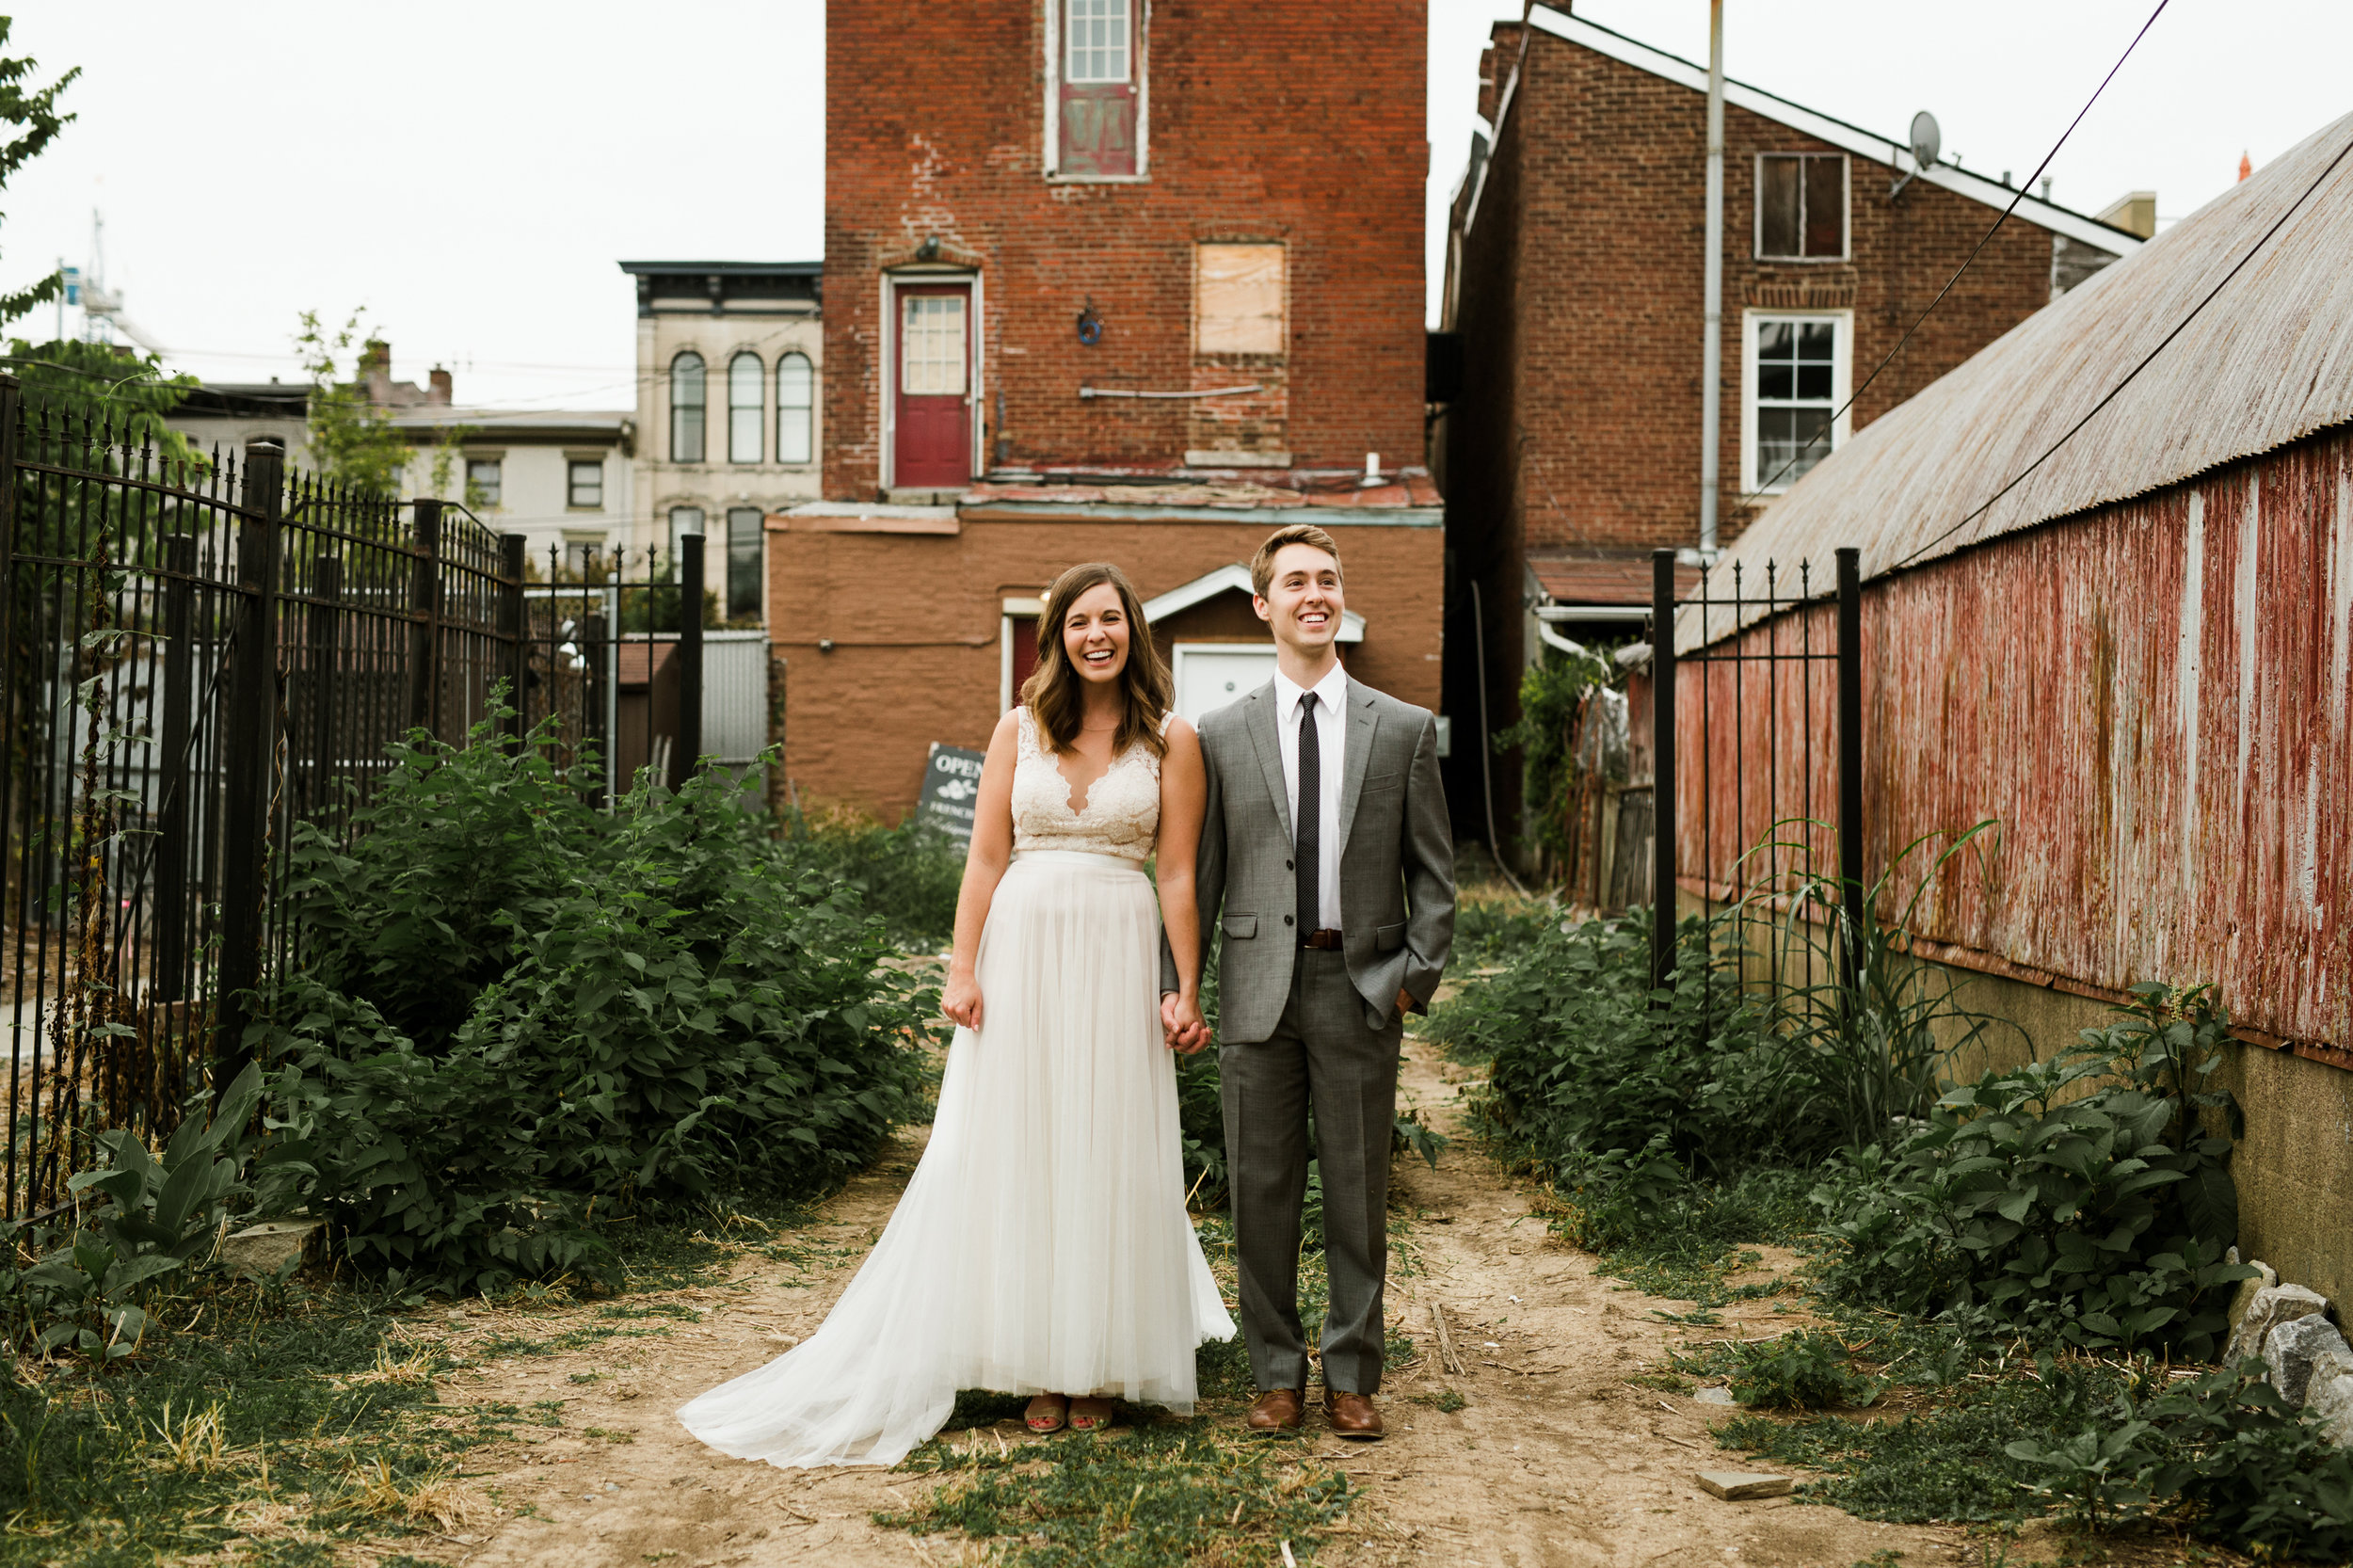 Amanda & Dave Anniversary 2018 Crystal Ludwick Photo Louisville Wedding Photographer Kentucky Wedding Photographer (10 of 43).jpg